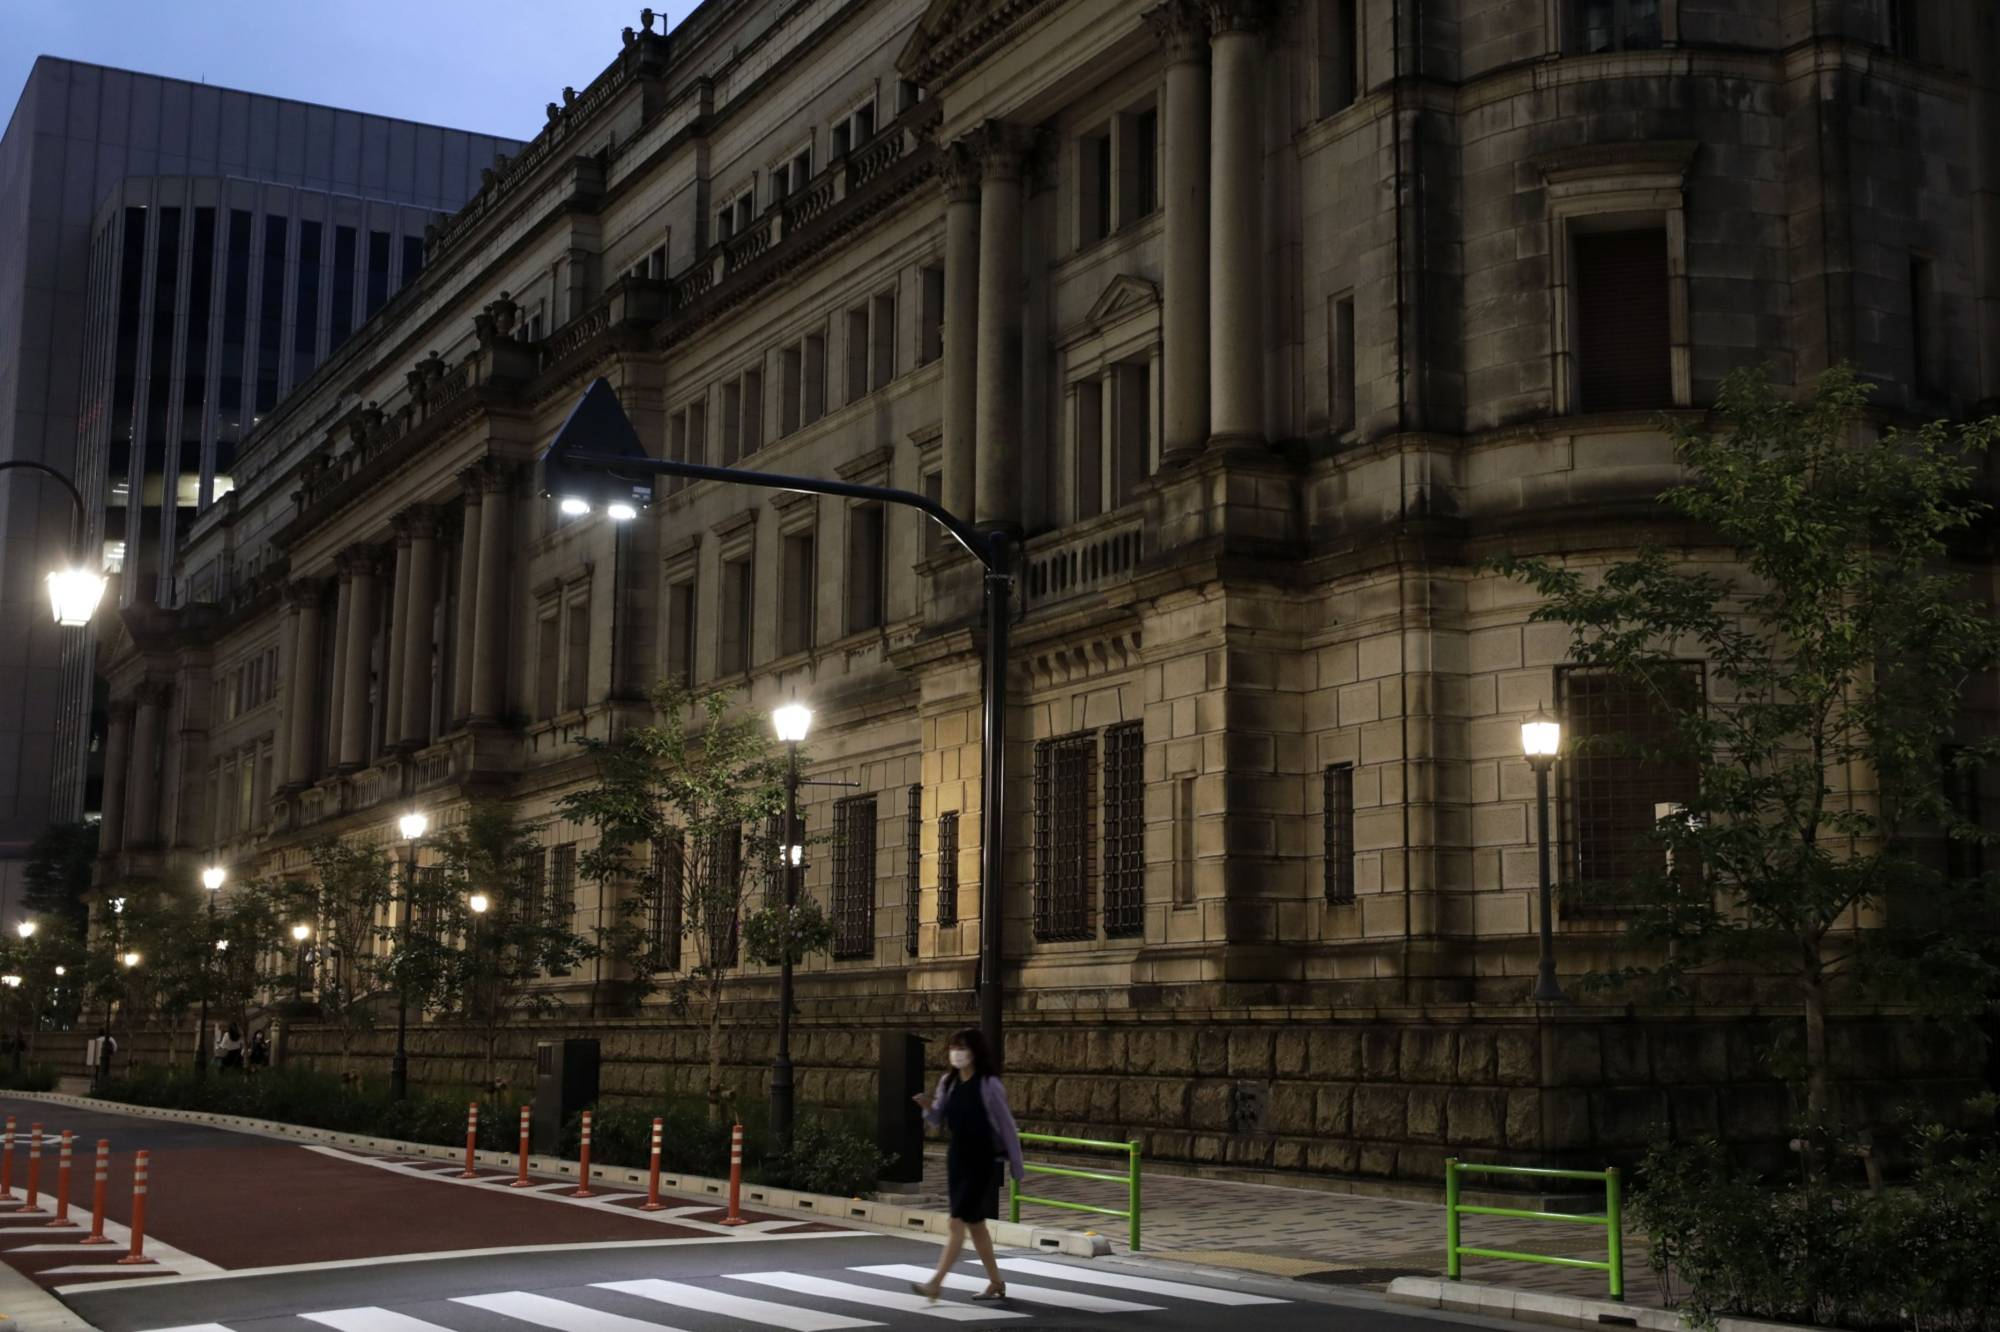 The Bank of Japan, seen in this photo, plans to conduct stress tests on its five major financial institutions to scrutinize how resilient they are to risks posed by COVID-19. | BLOOMBERG